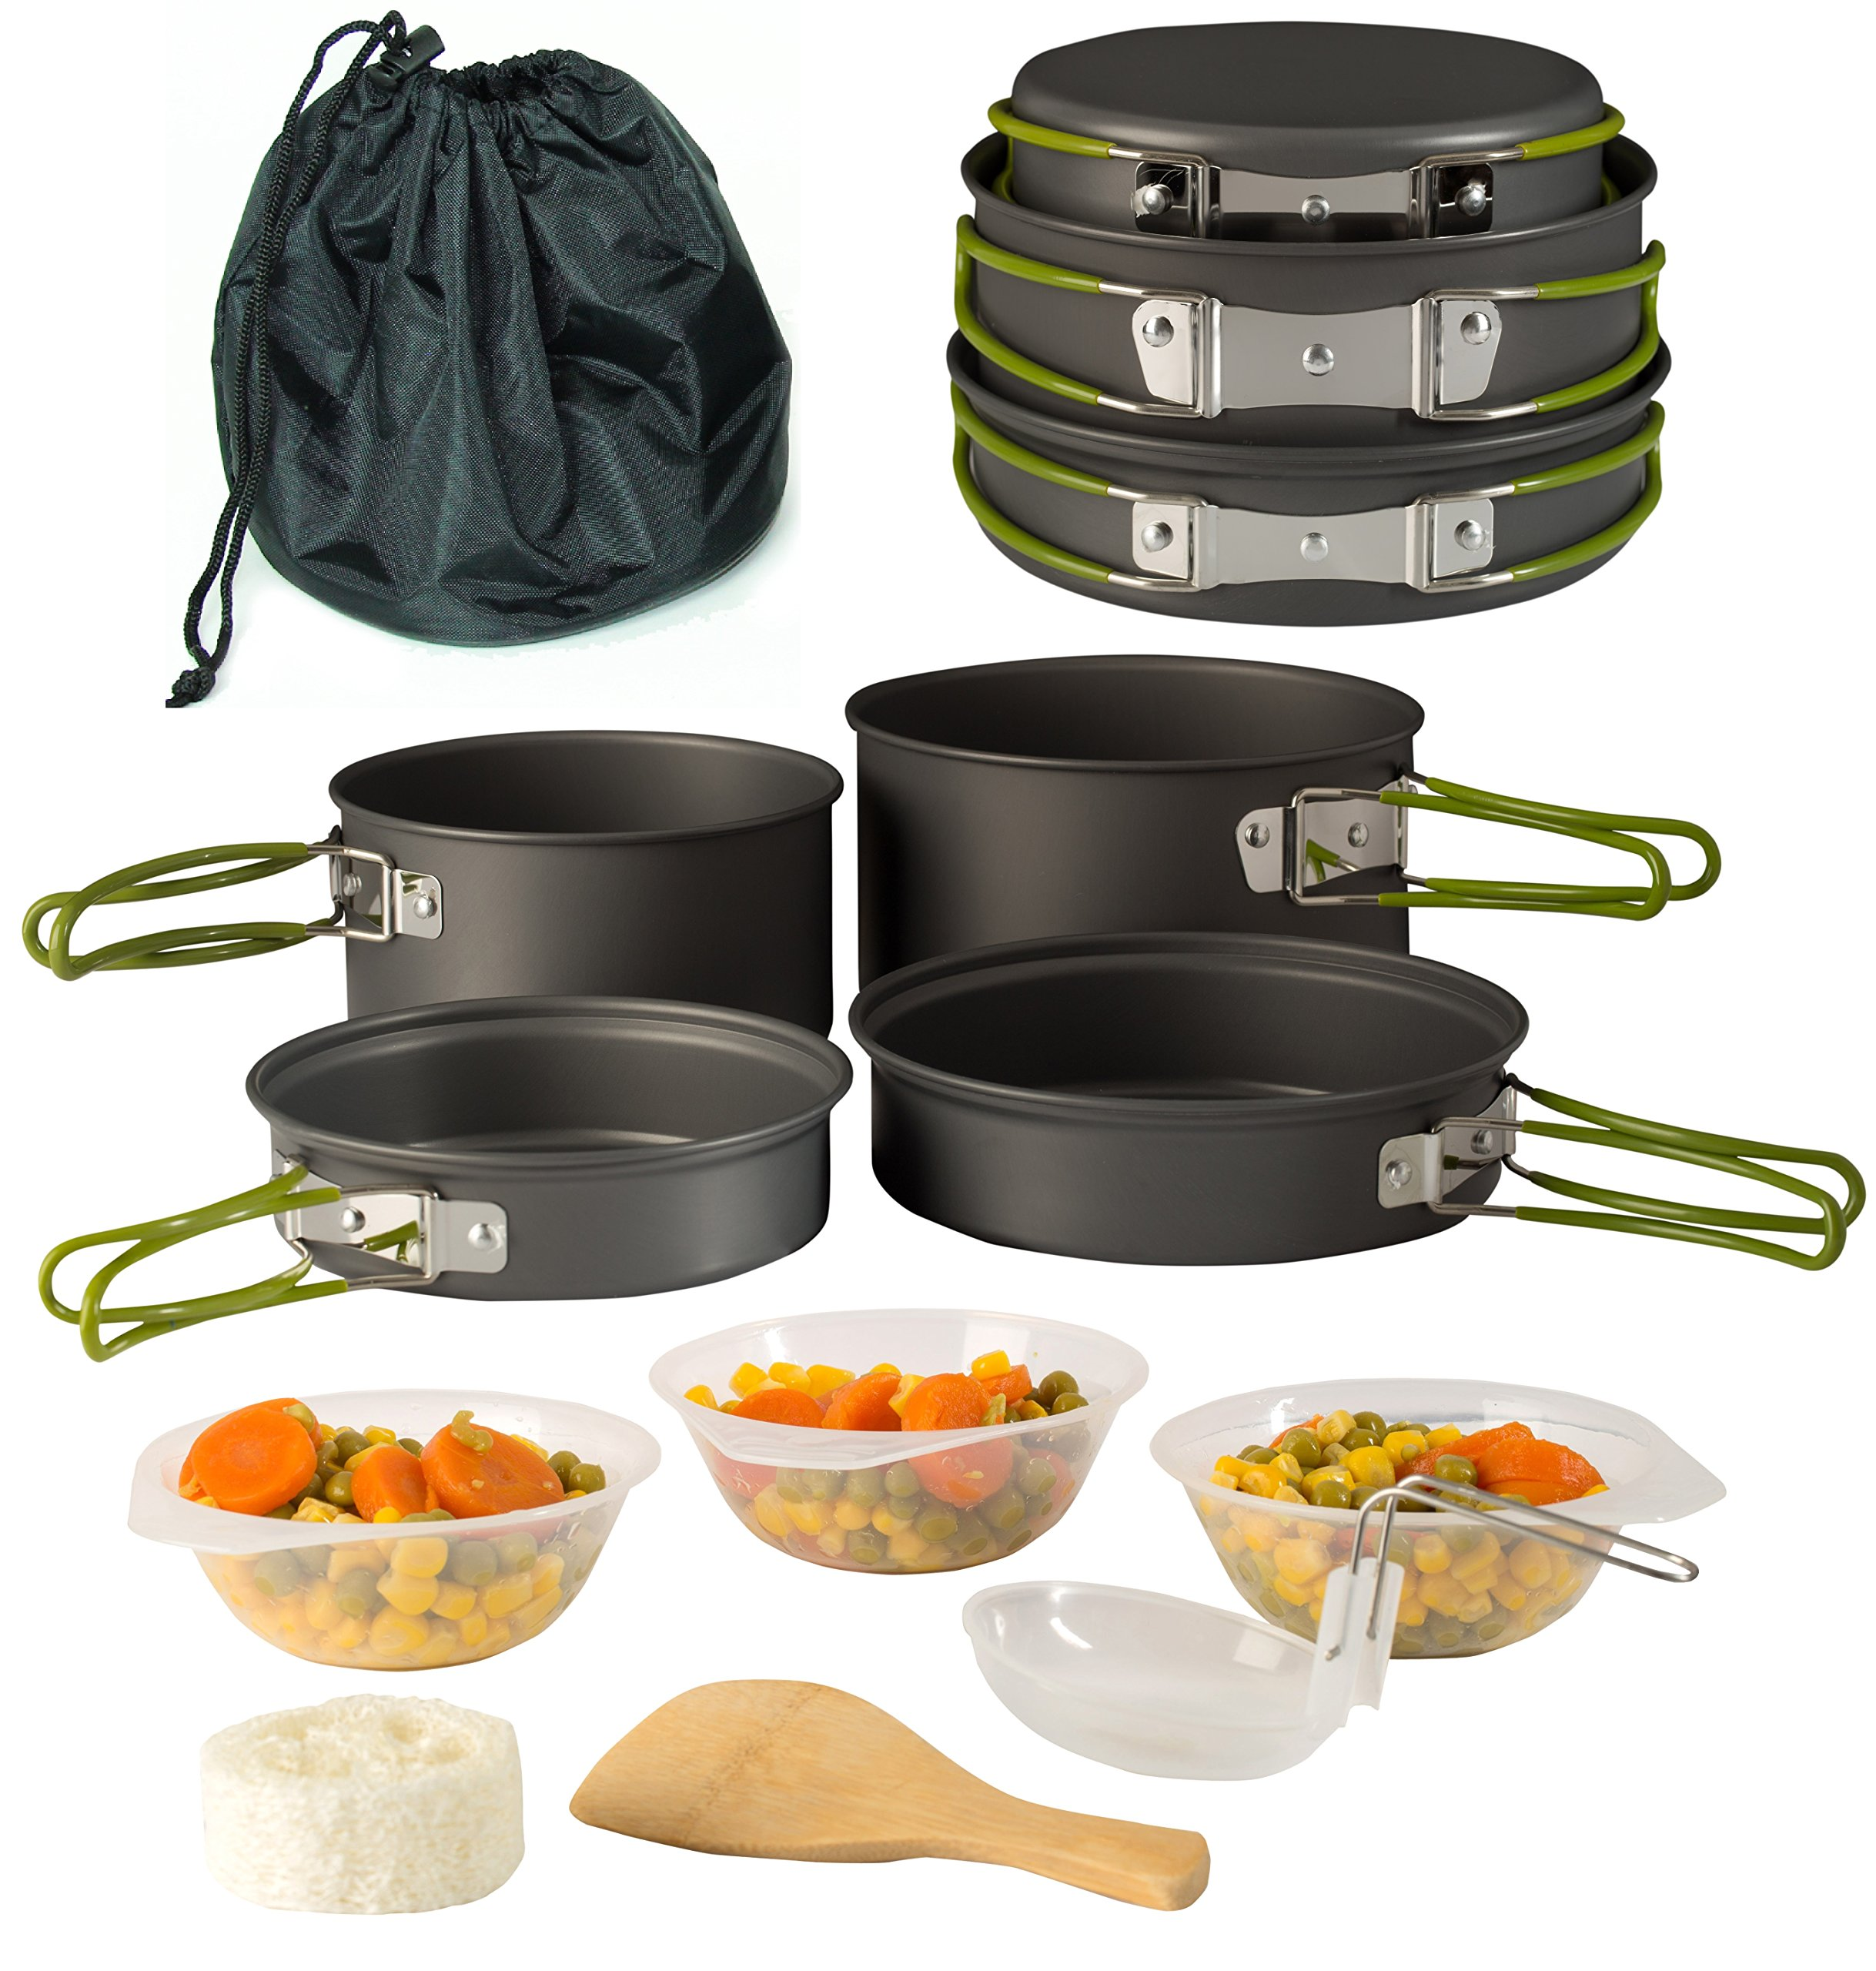 Wealers Camping Cookware 11 Piece Outdoor Mess Kit Backpacking| Trailblazing add on | Compact| Lightweight| Durable with Chef Pots, Bowls, Utensils and Mesh Carry Bag Included (11 Piece Set) by Wealers